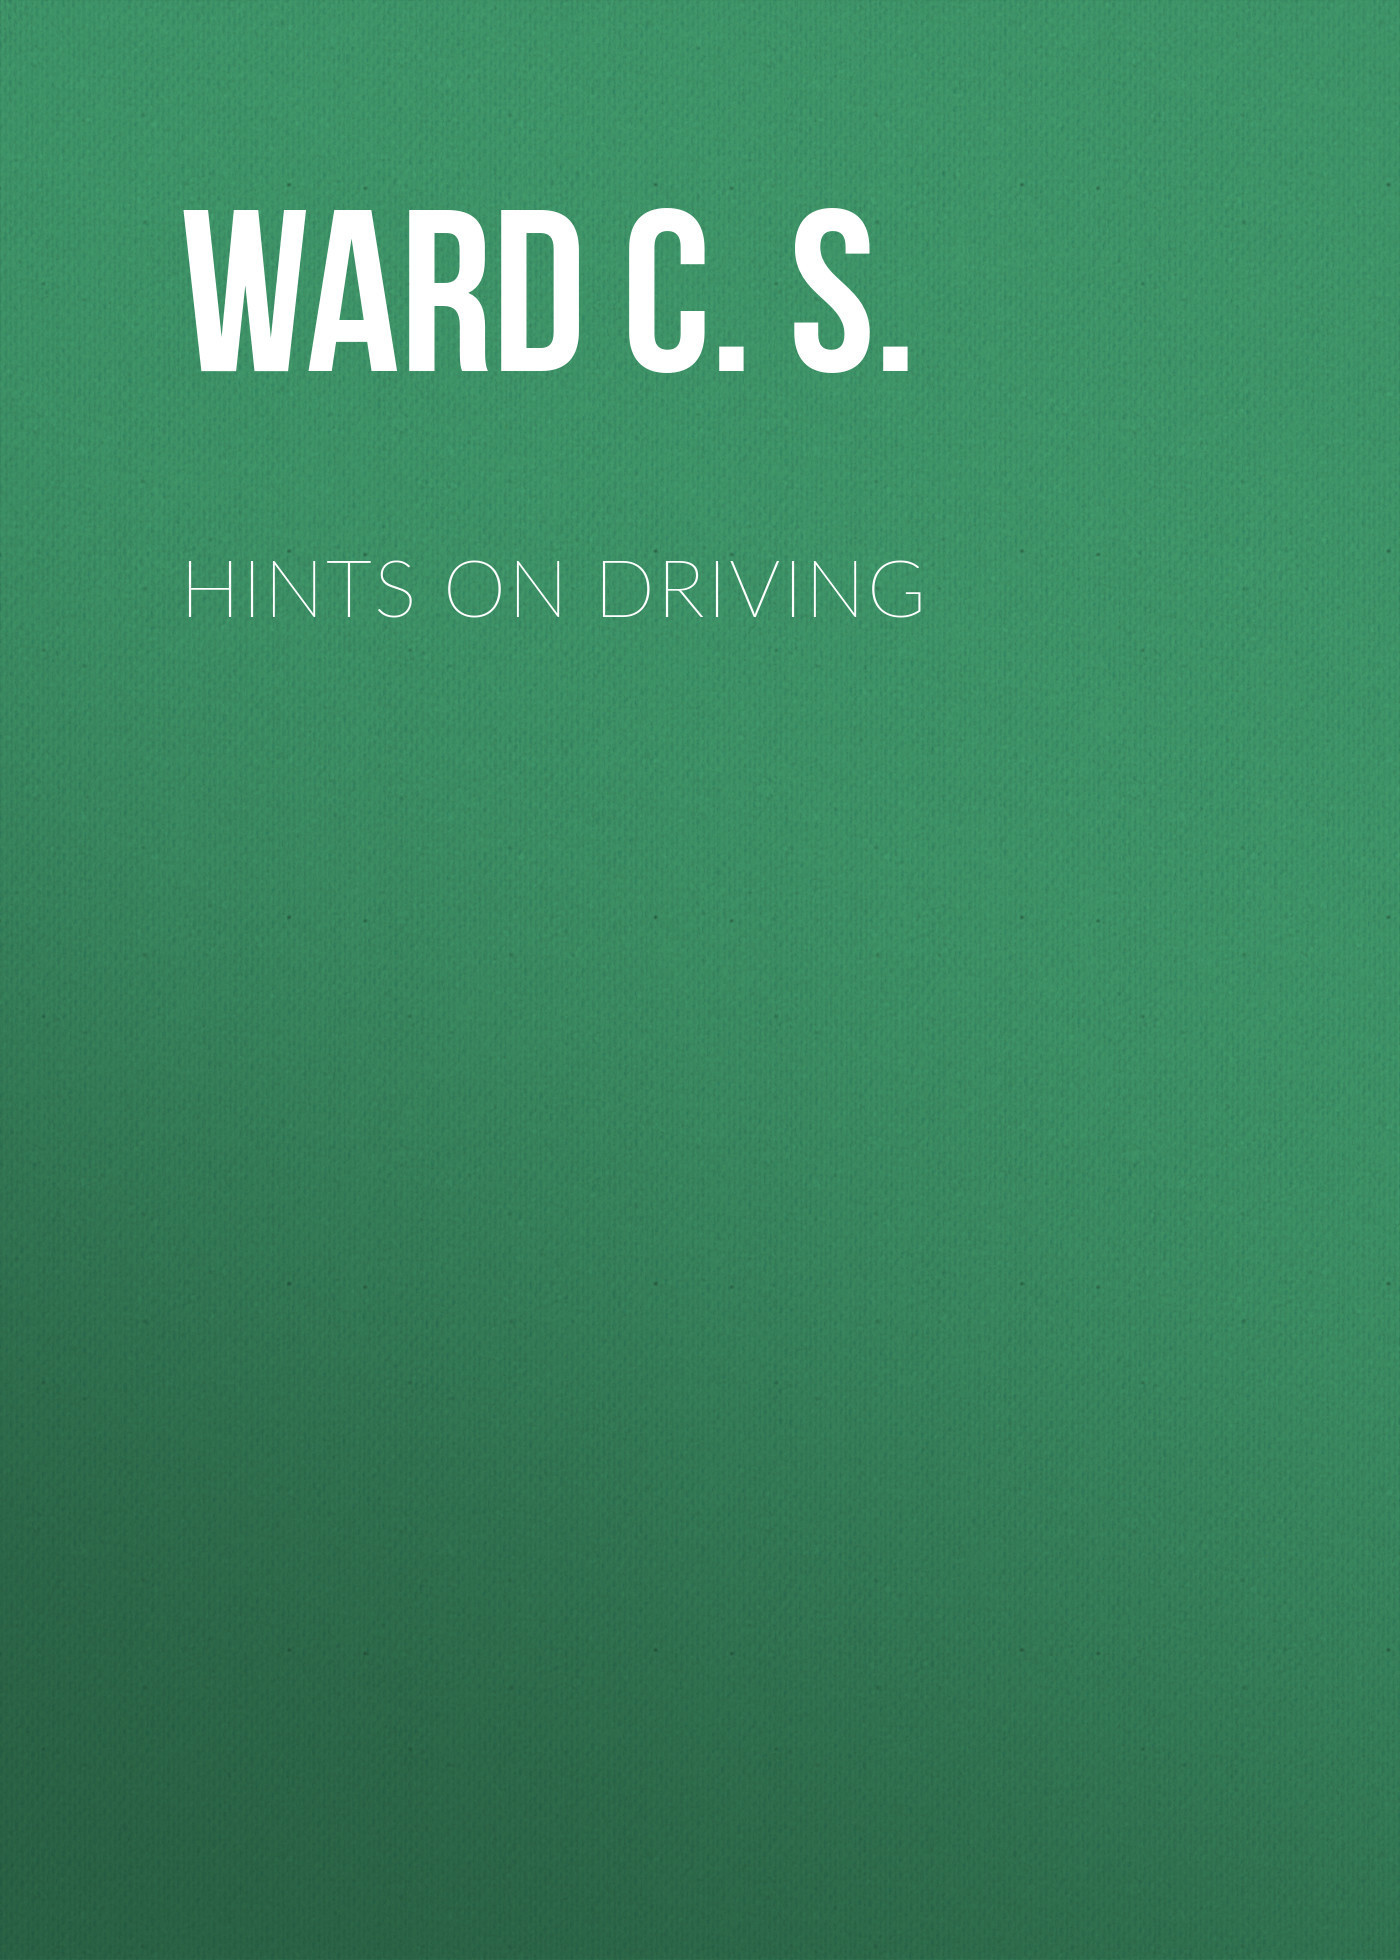 Ward C. S. Hints on Driving watch and ward